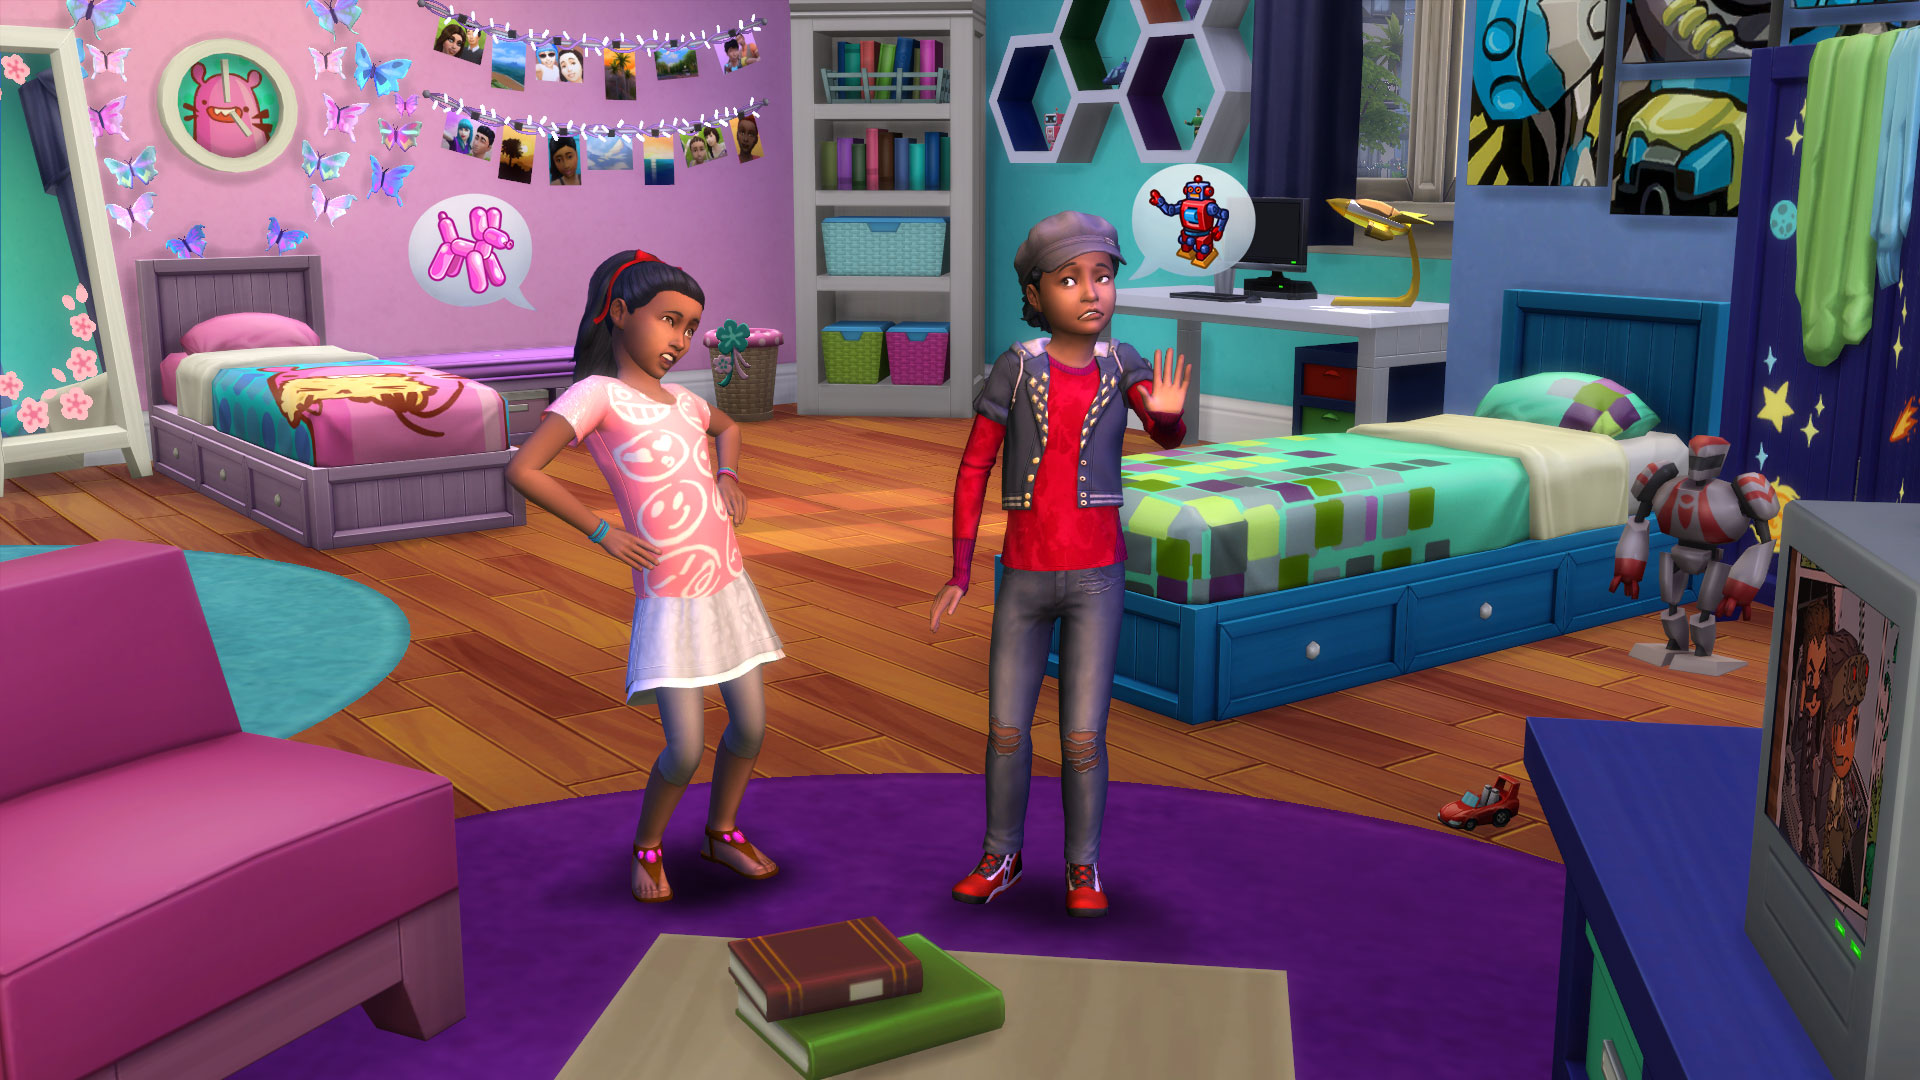 Collect trading cards in the sims 4 kids room stuff for Rooms 4 kids